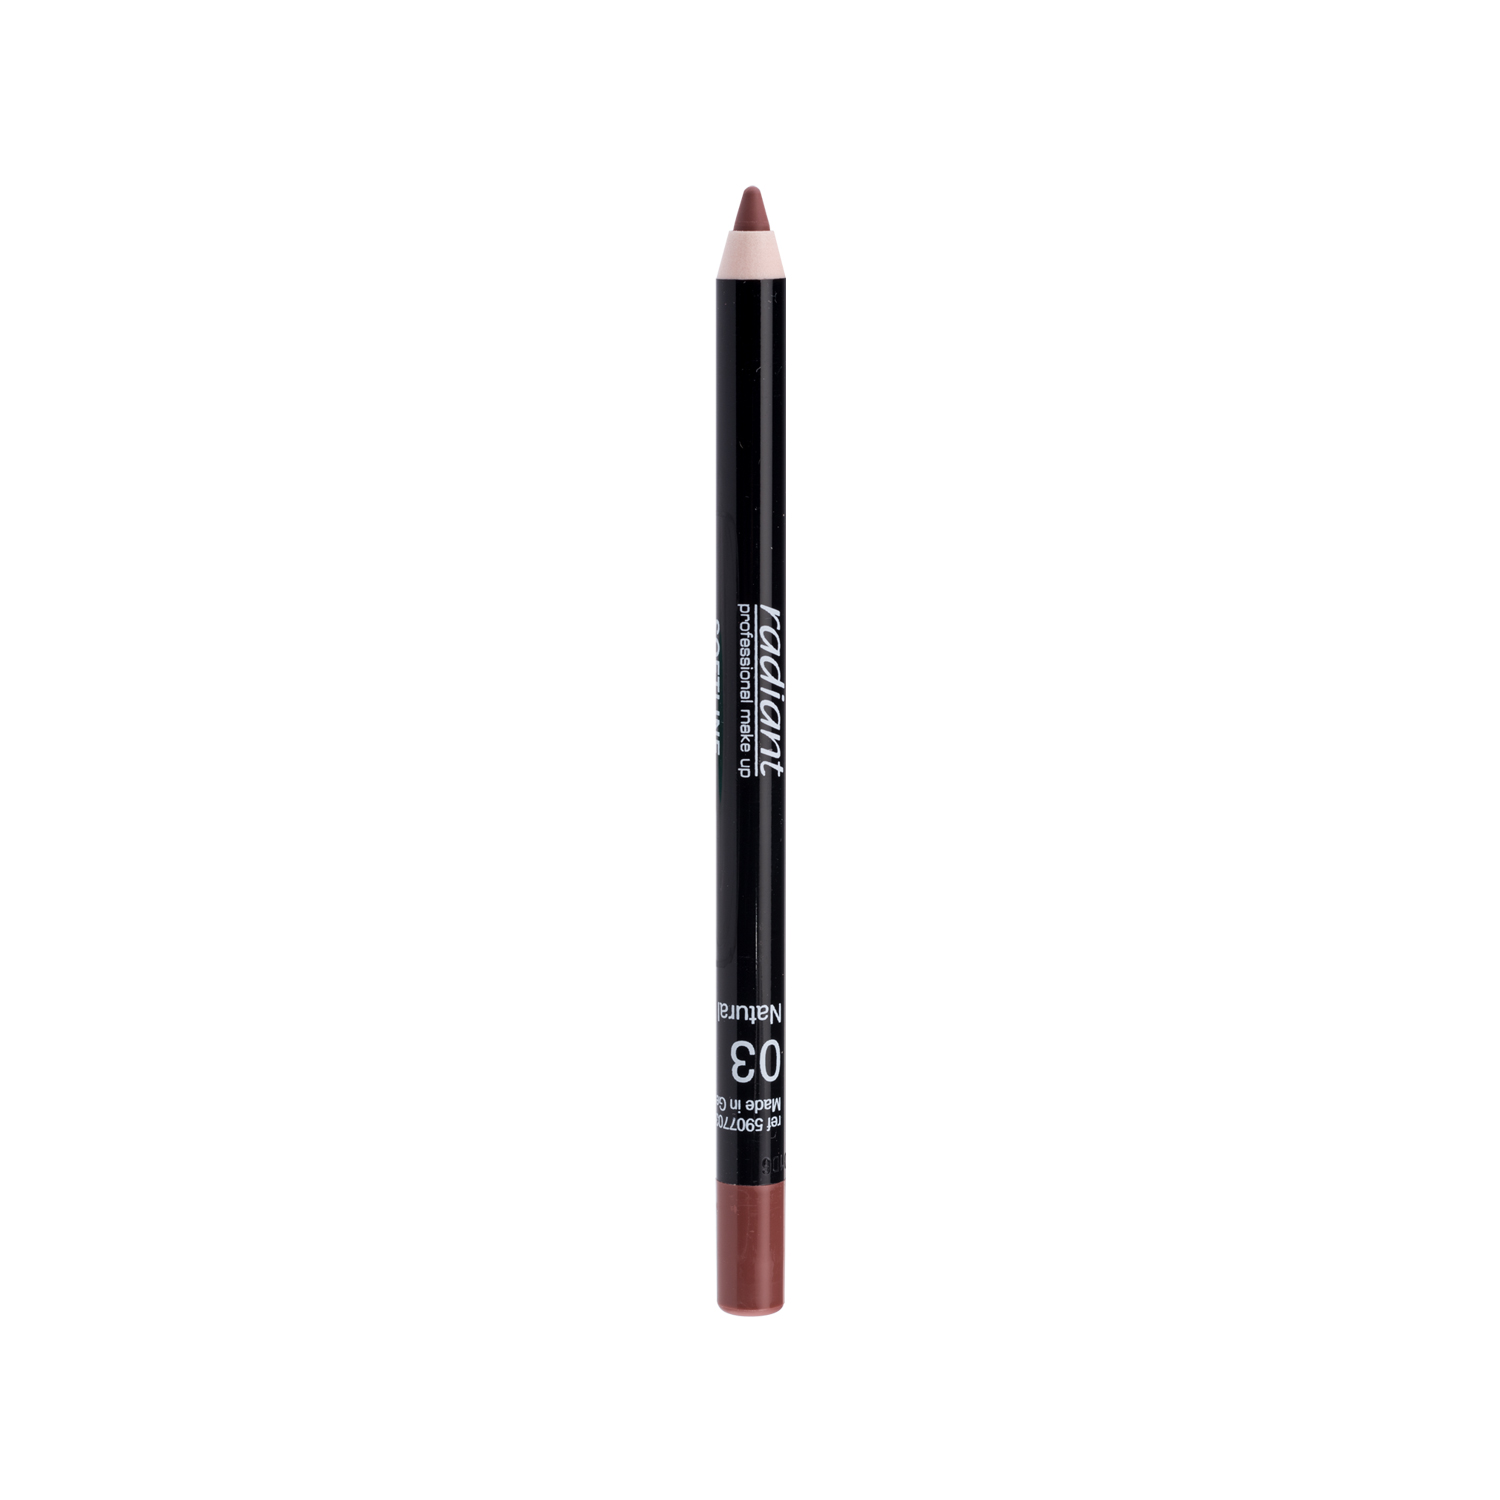 SOFTLINE WATERPROOF LIP PENCIL (03 Natural)